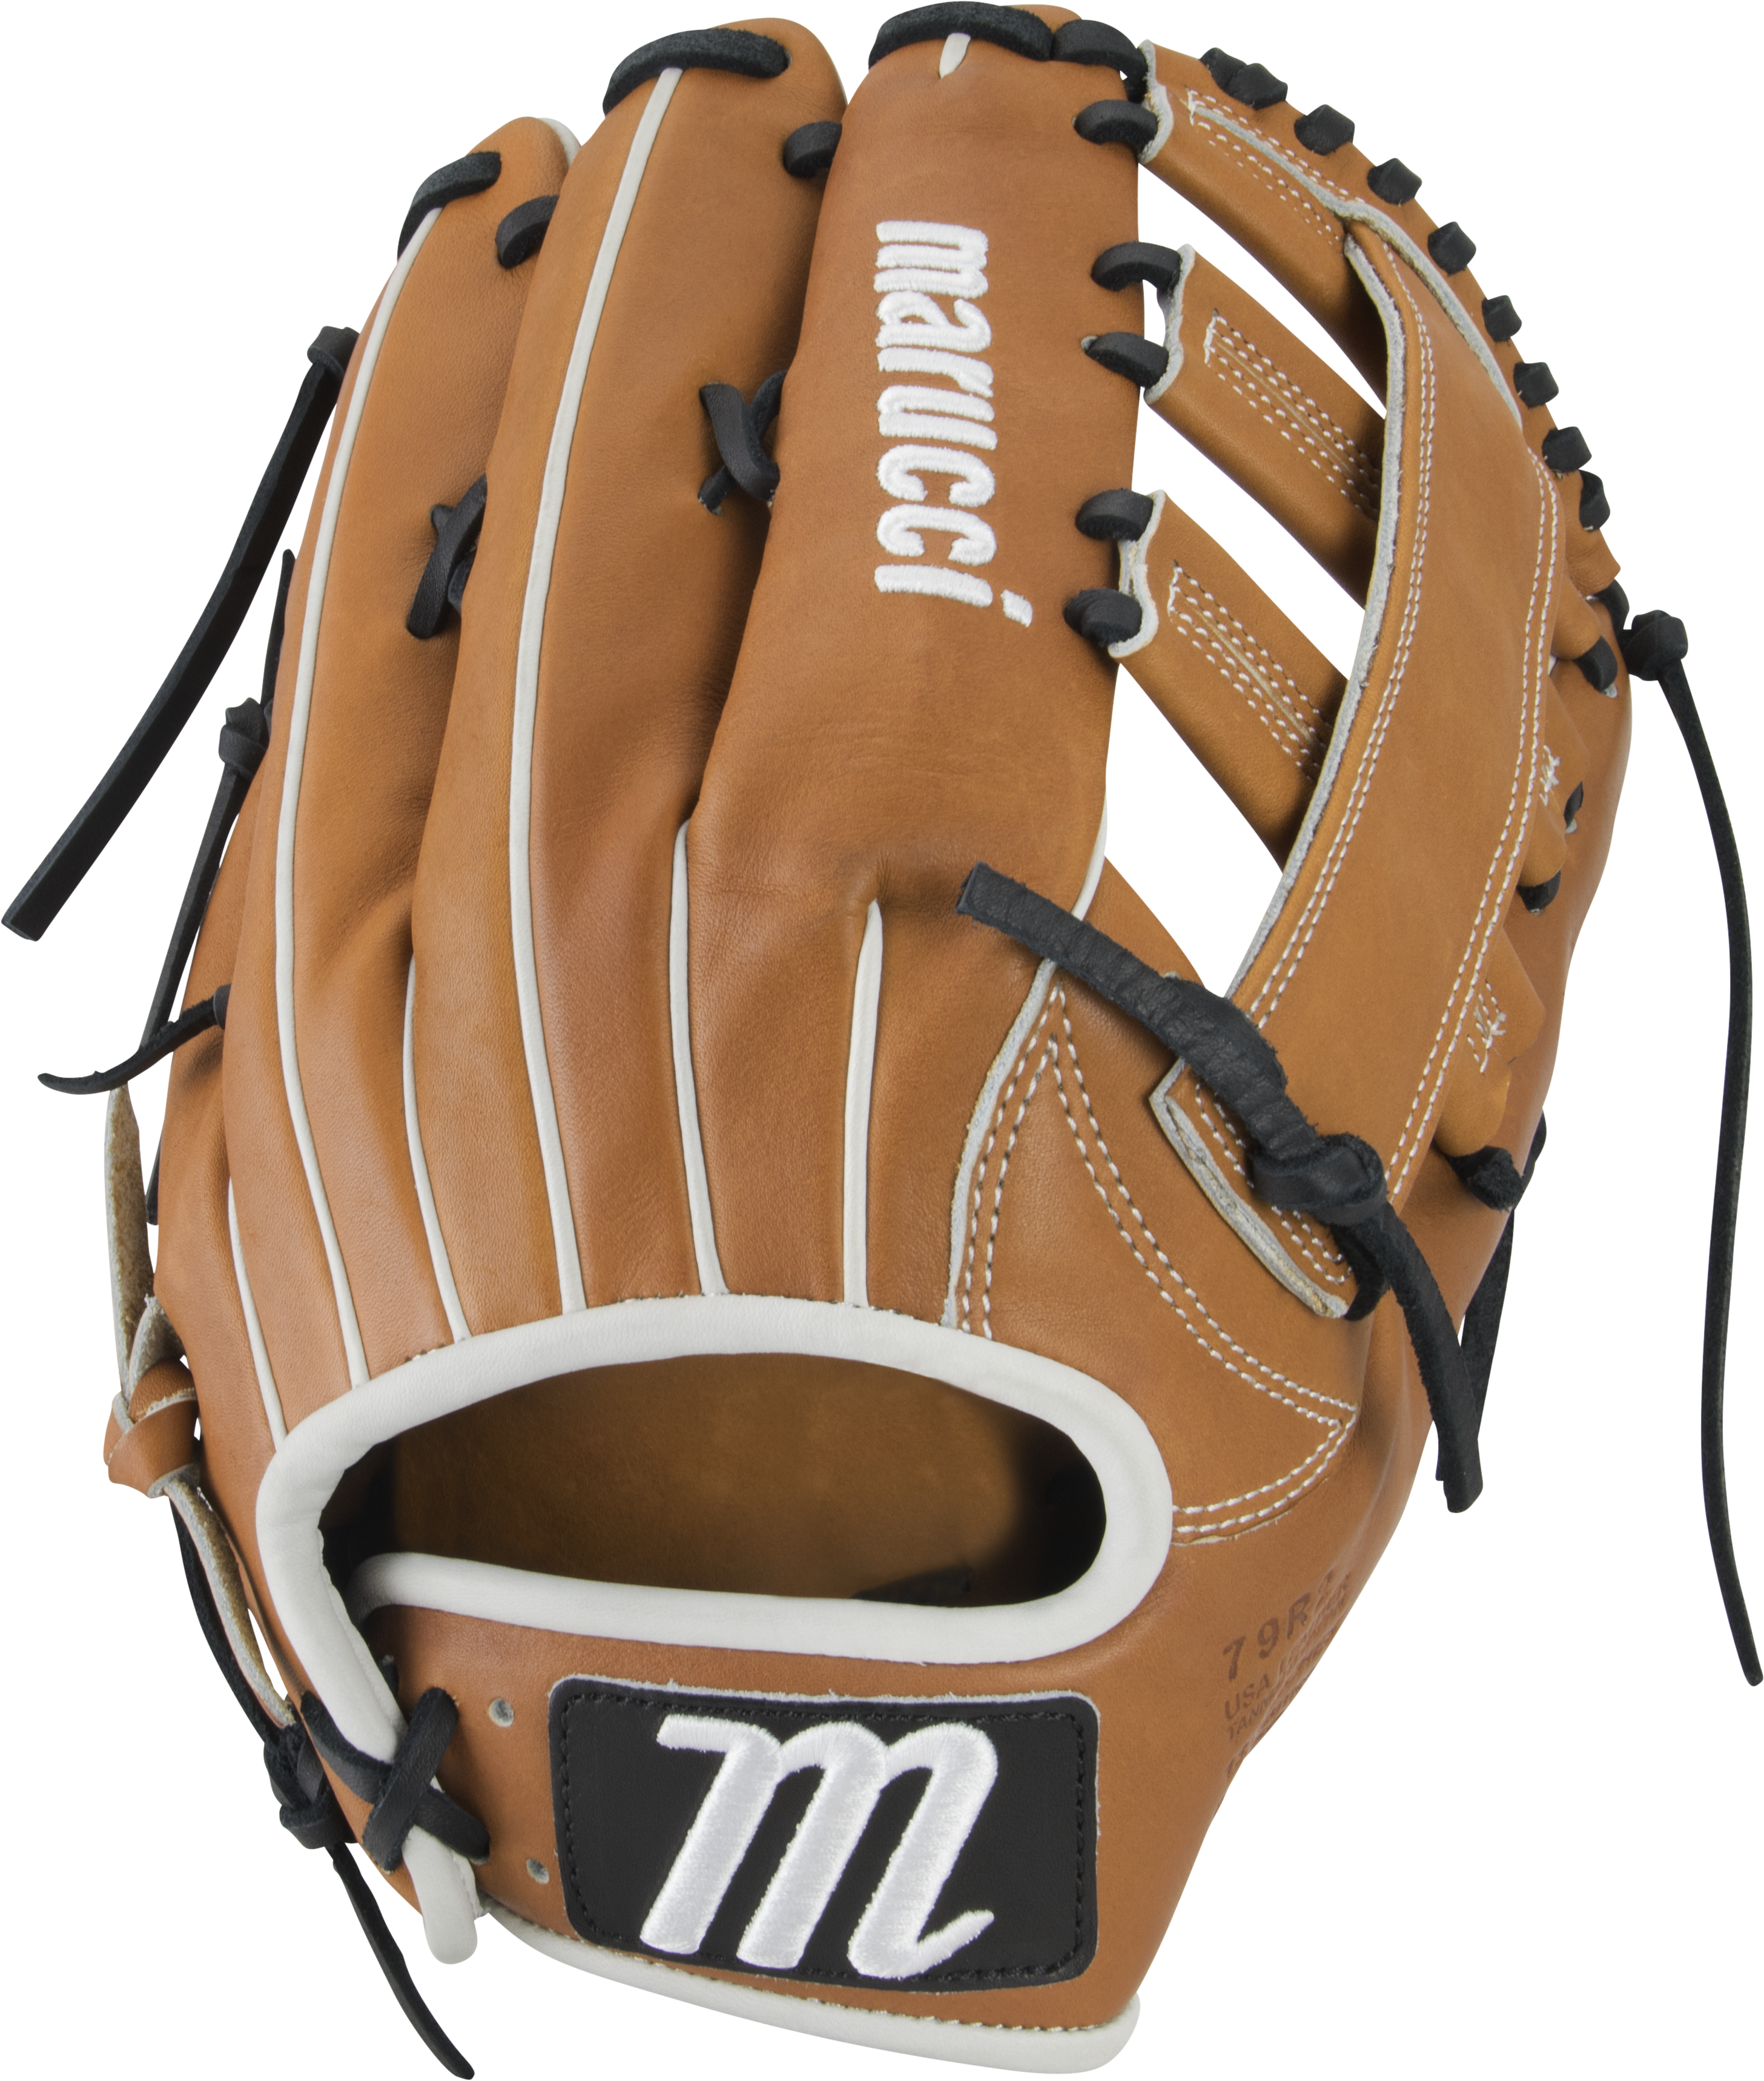 marucci-capitol-12-75-baseball-glove-79r2-two-bar-post-web-left-hand-throw MFGCP79R2-TFBK-LeftHandThrow   849817099315 Premium Japanese-tanned USA Kip leather combines ideal stiffness with lightweight feel